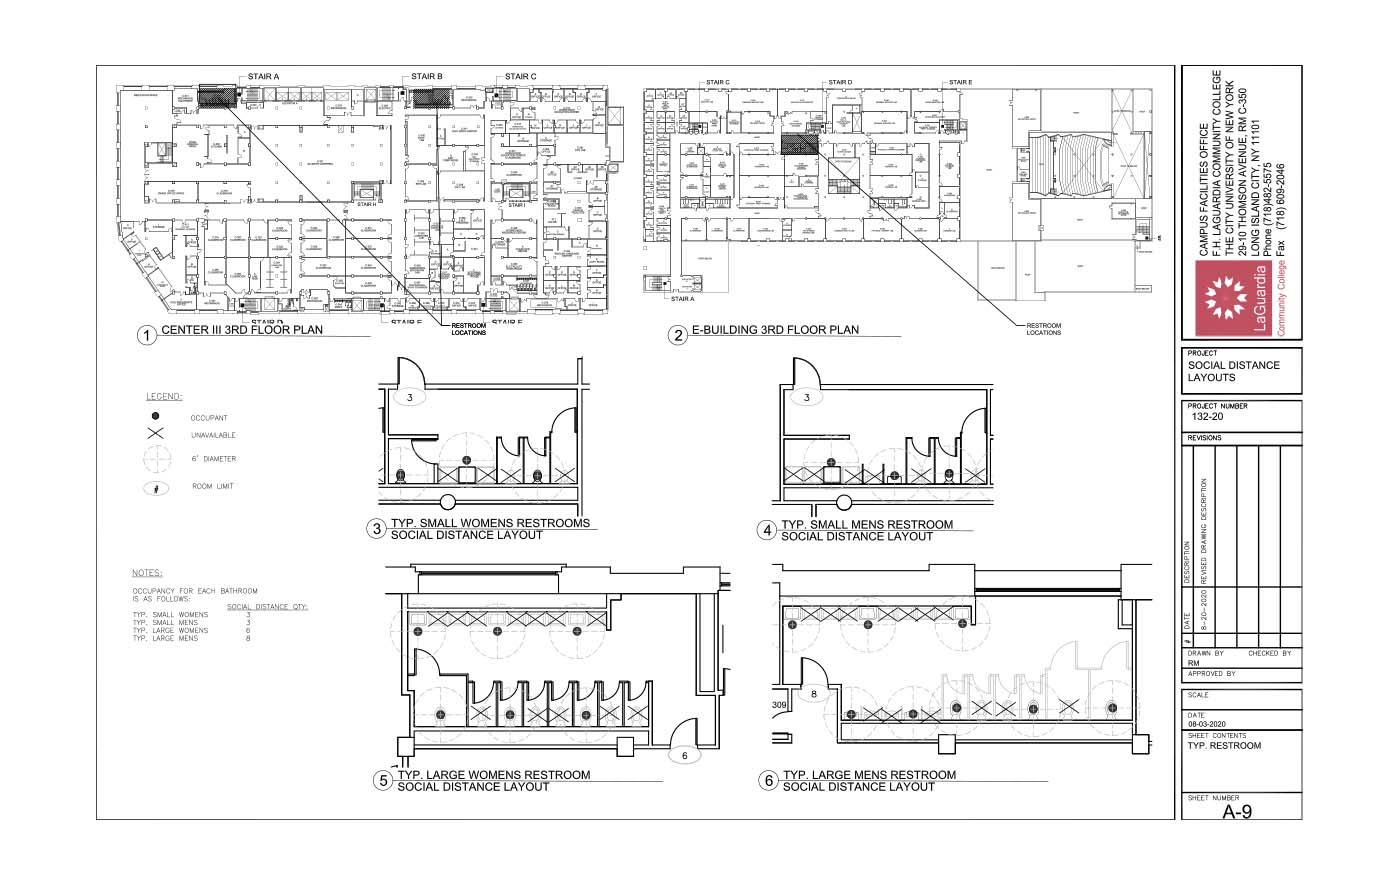 LaGuardia's campus facilities_E-building_center III 3rd floor plan